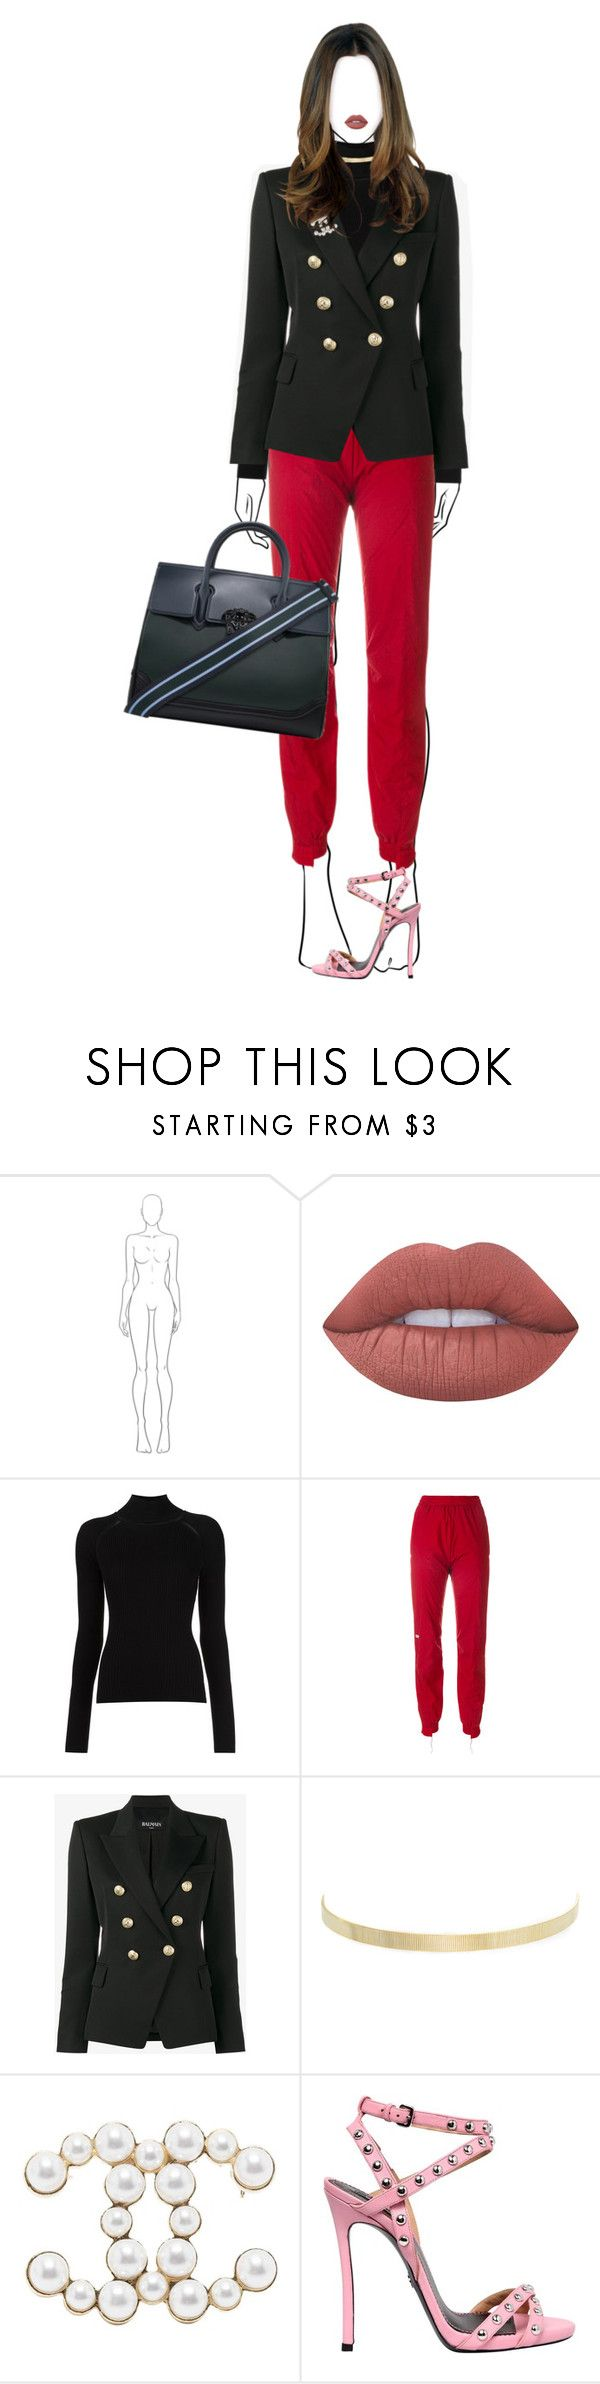 """""""HELLO LONDON"""" by celsoromera ❤ liked on Polyvore featuring Lime Crime, Vetements, Balmain, Kenneth Jay Lane, Chanel, Dsquared2 and Versace"""